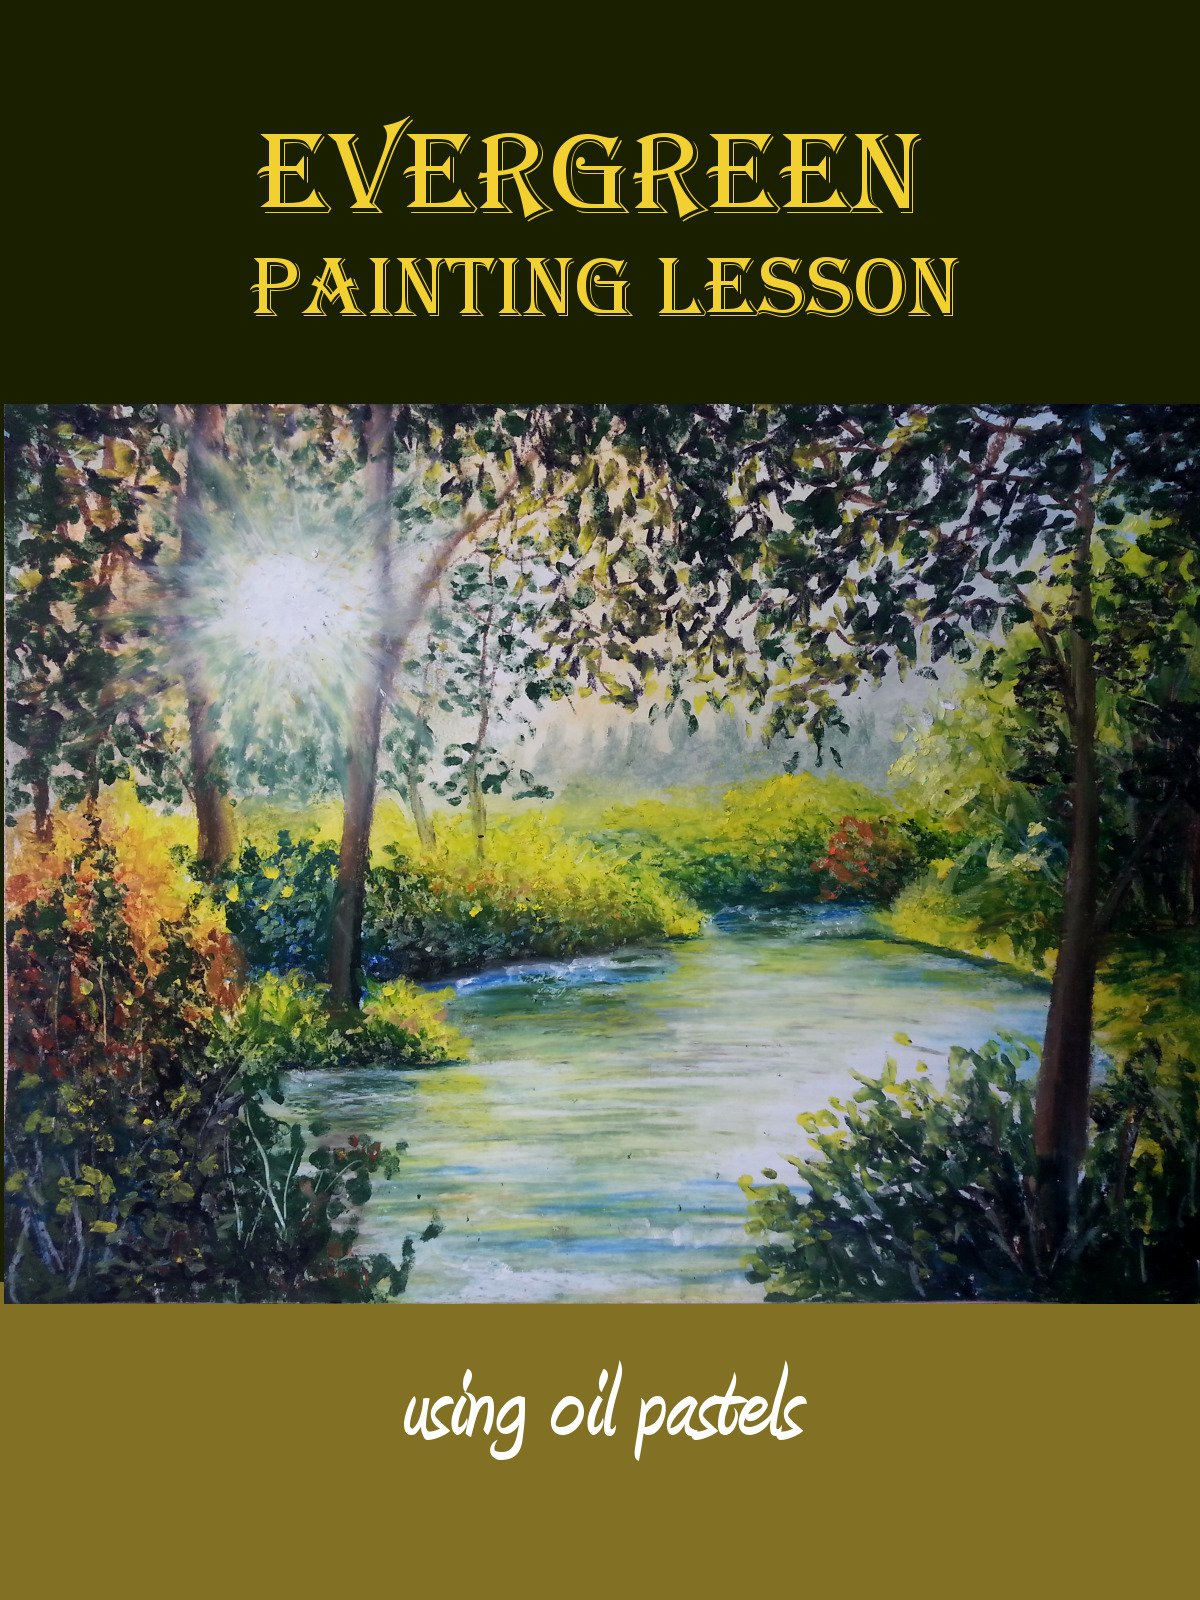 Evergreen Painting Lesson